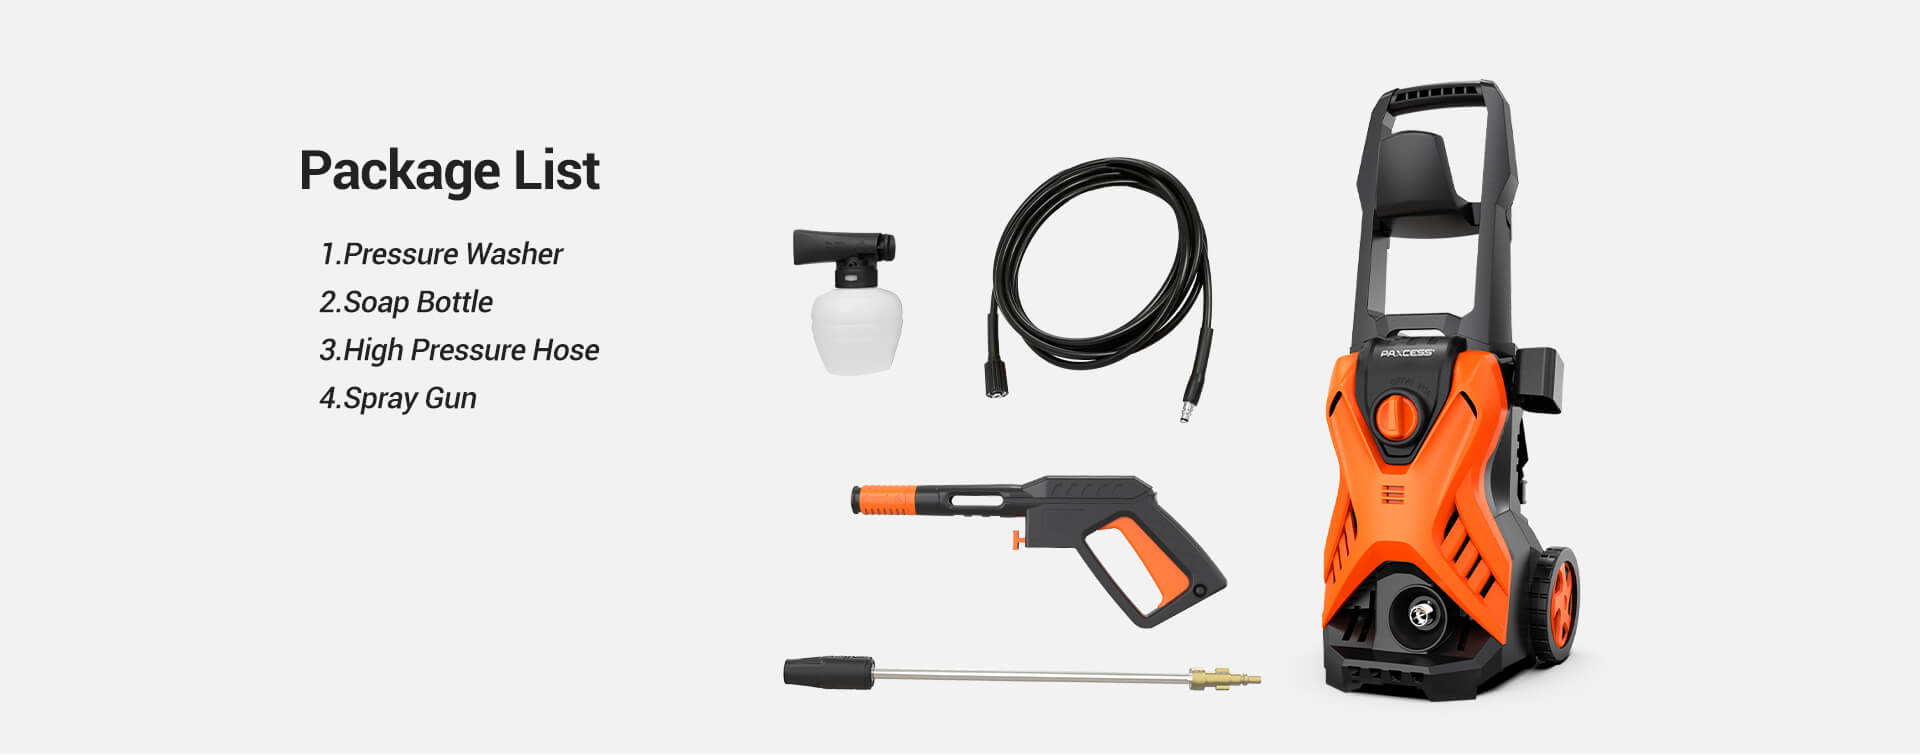 P2.1 Adjustable 2300PSI 1.6GPM Electric Pressure Washer (5)